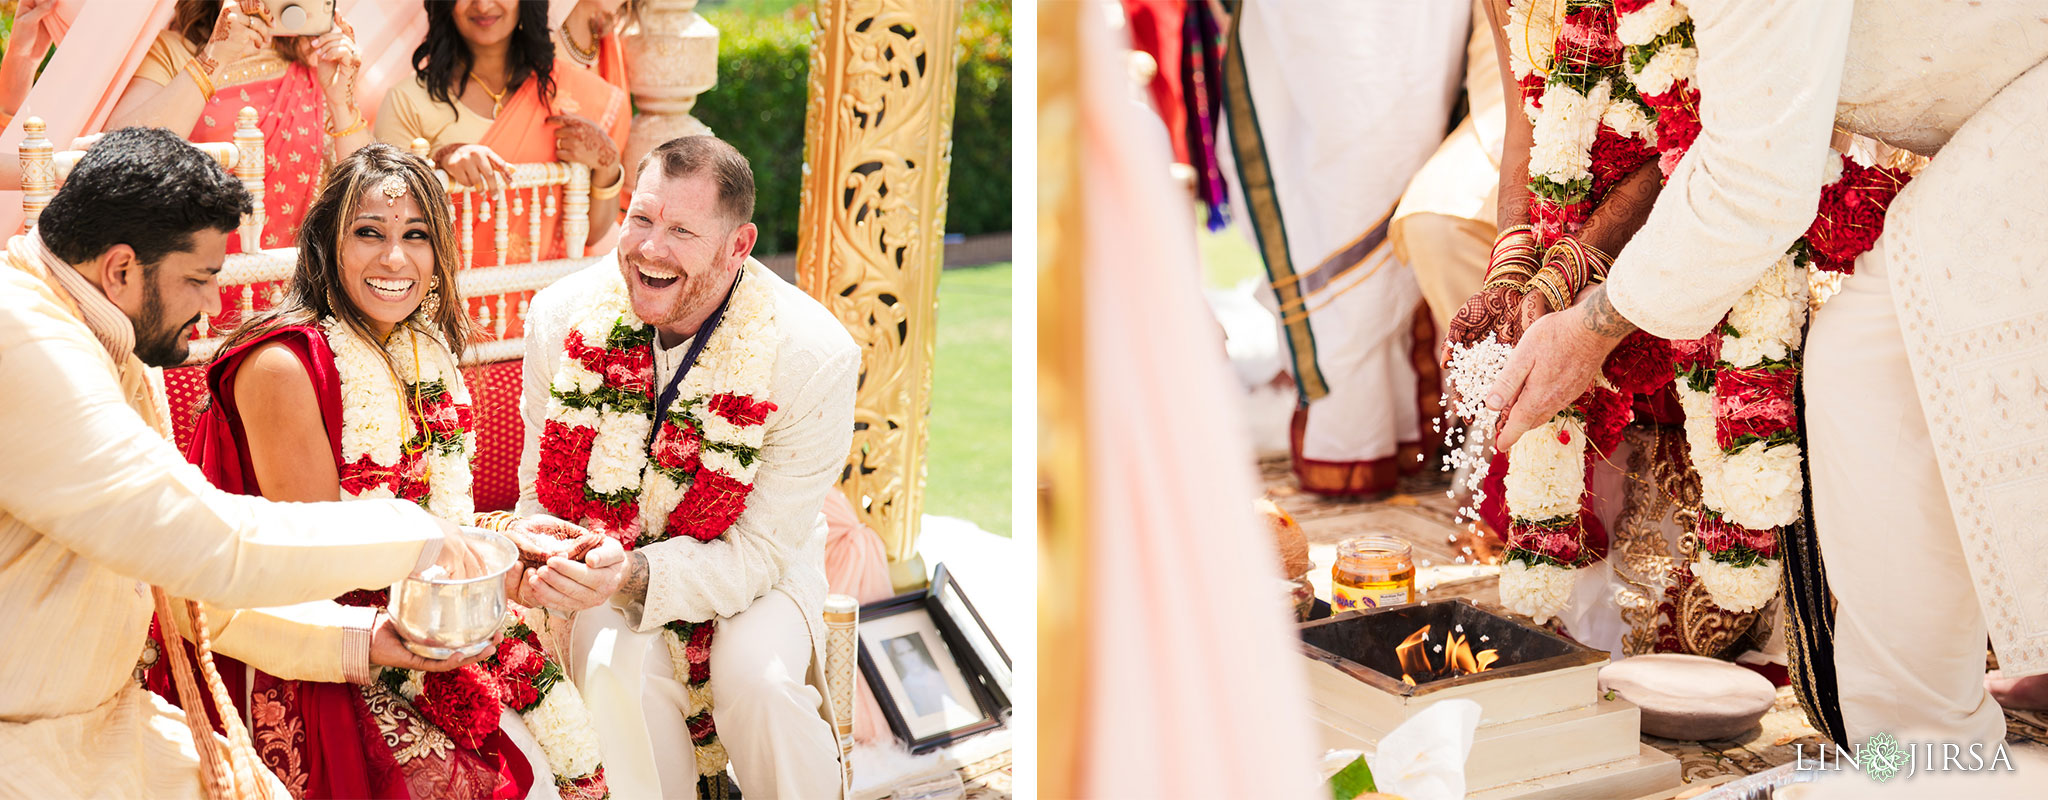 037 sherwood country club indian wedding ceremony photography